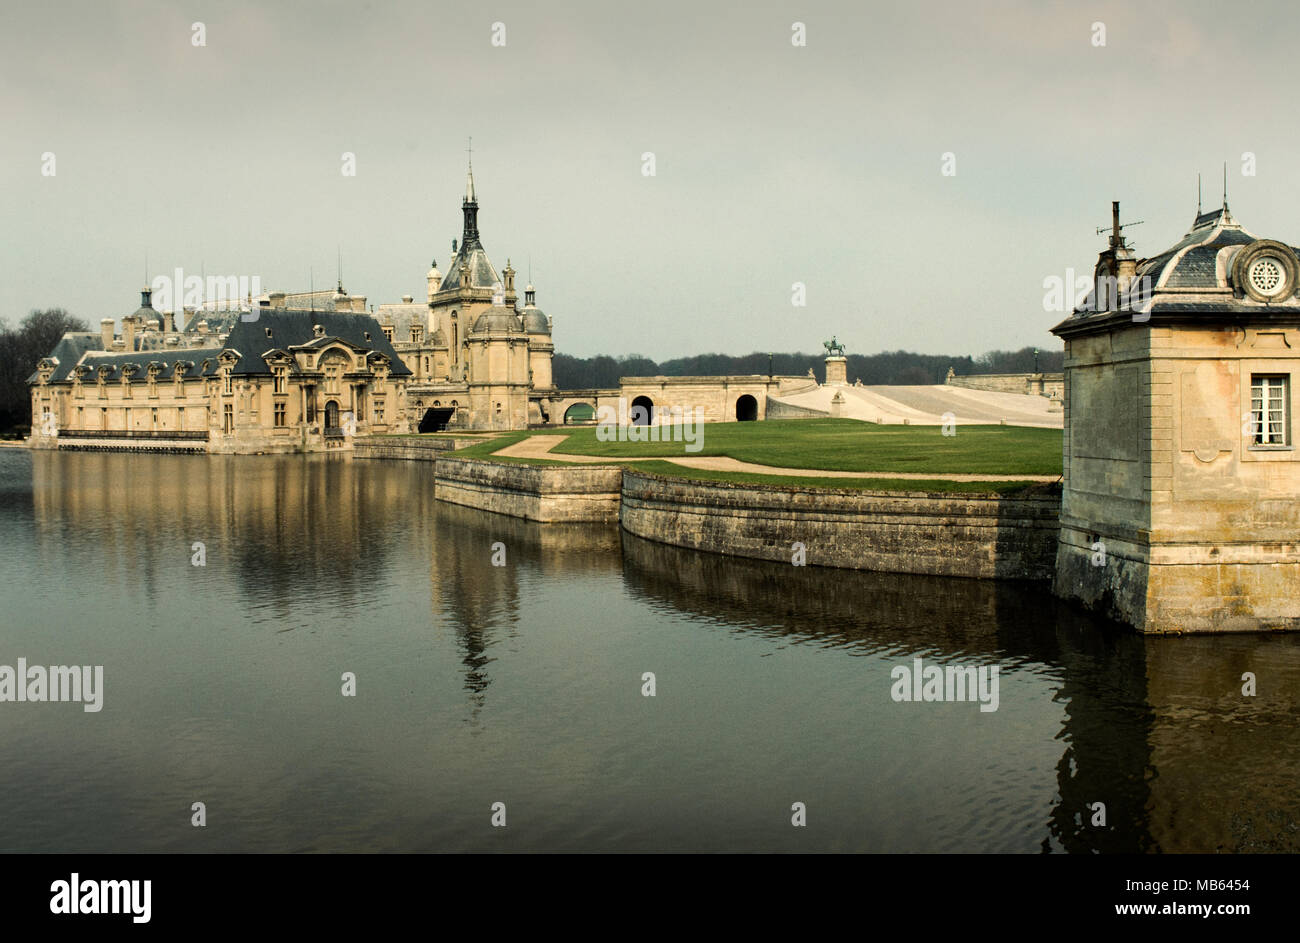 2000 The Chteau De Chantilly Is A Historic Located In Town Of France About 50 Kilometers 30 Miles North Paris